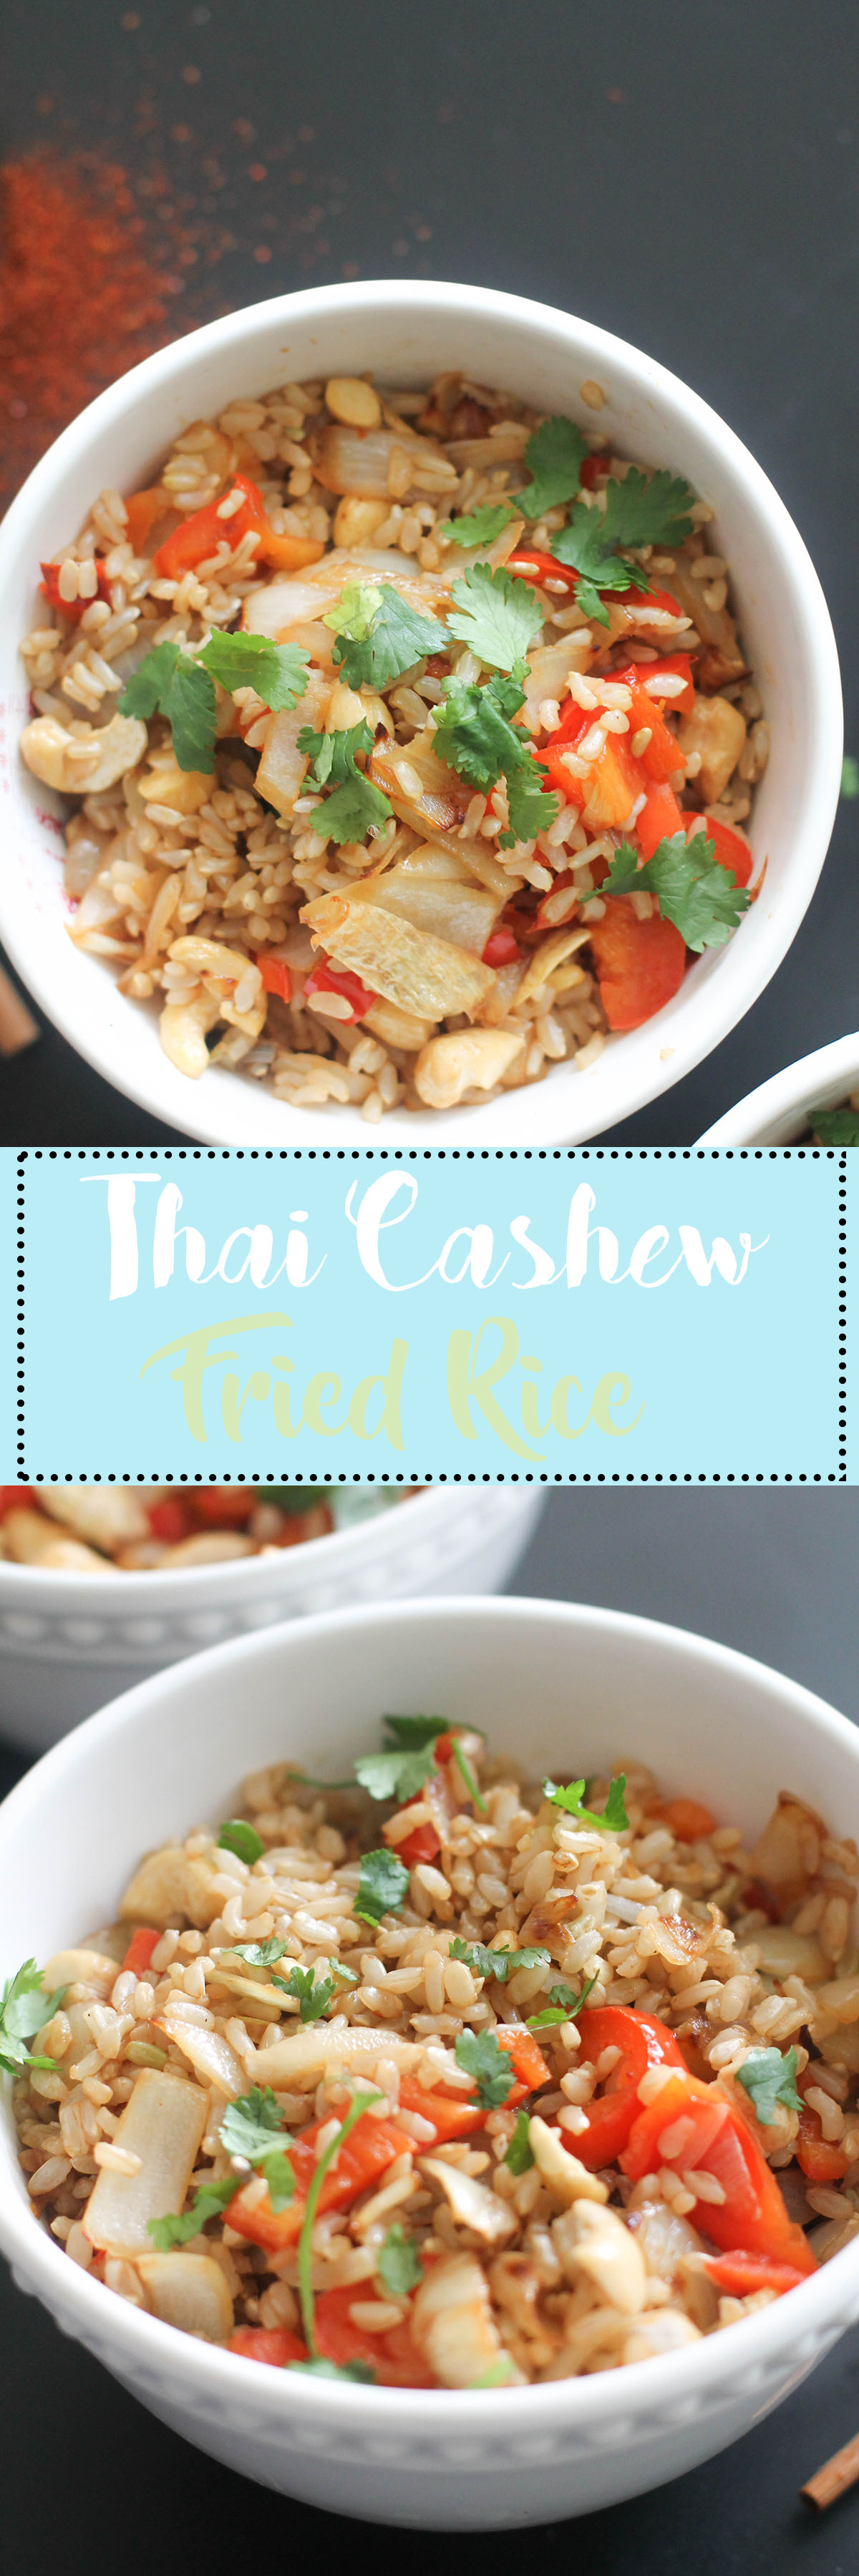 This Thai cashew fried rice is vegan, gluten free, and the perfect side dish. It's incredibly easy to make, comes together in under 30 minutes, is extremely filling, and a lighter option to the traditional dish.